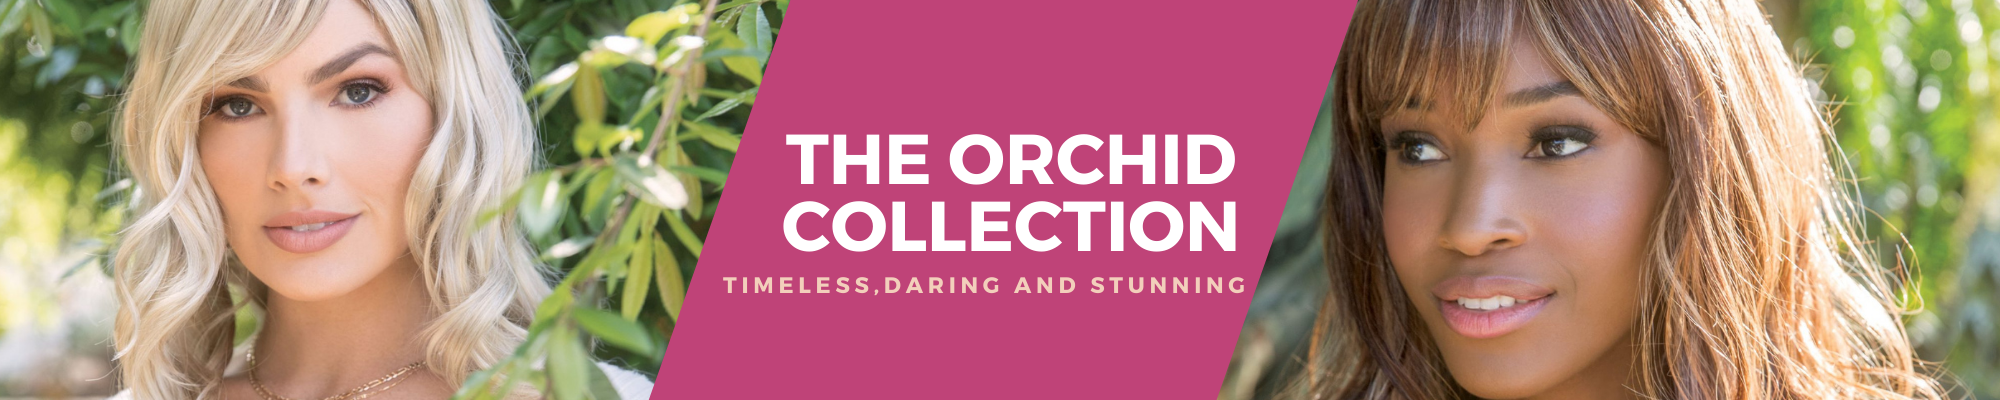 The Orchid Collection by René of Paris™.